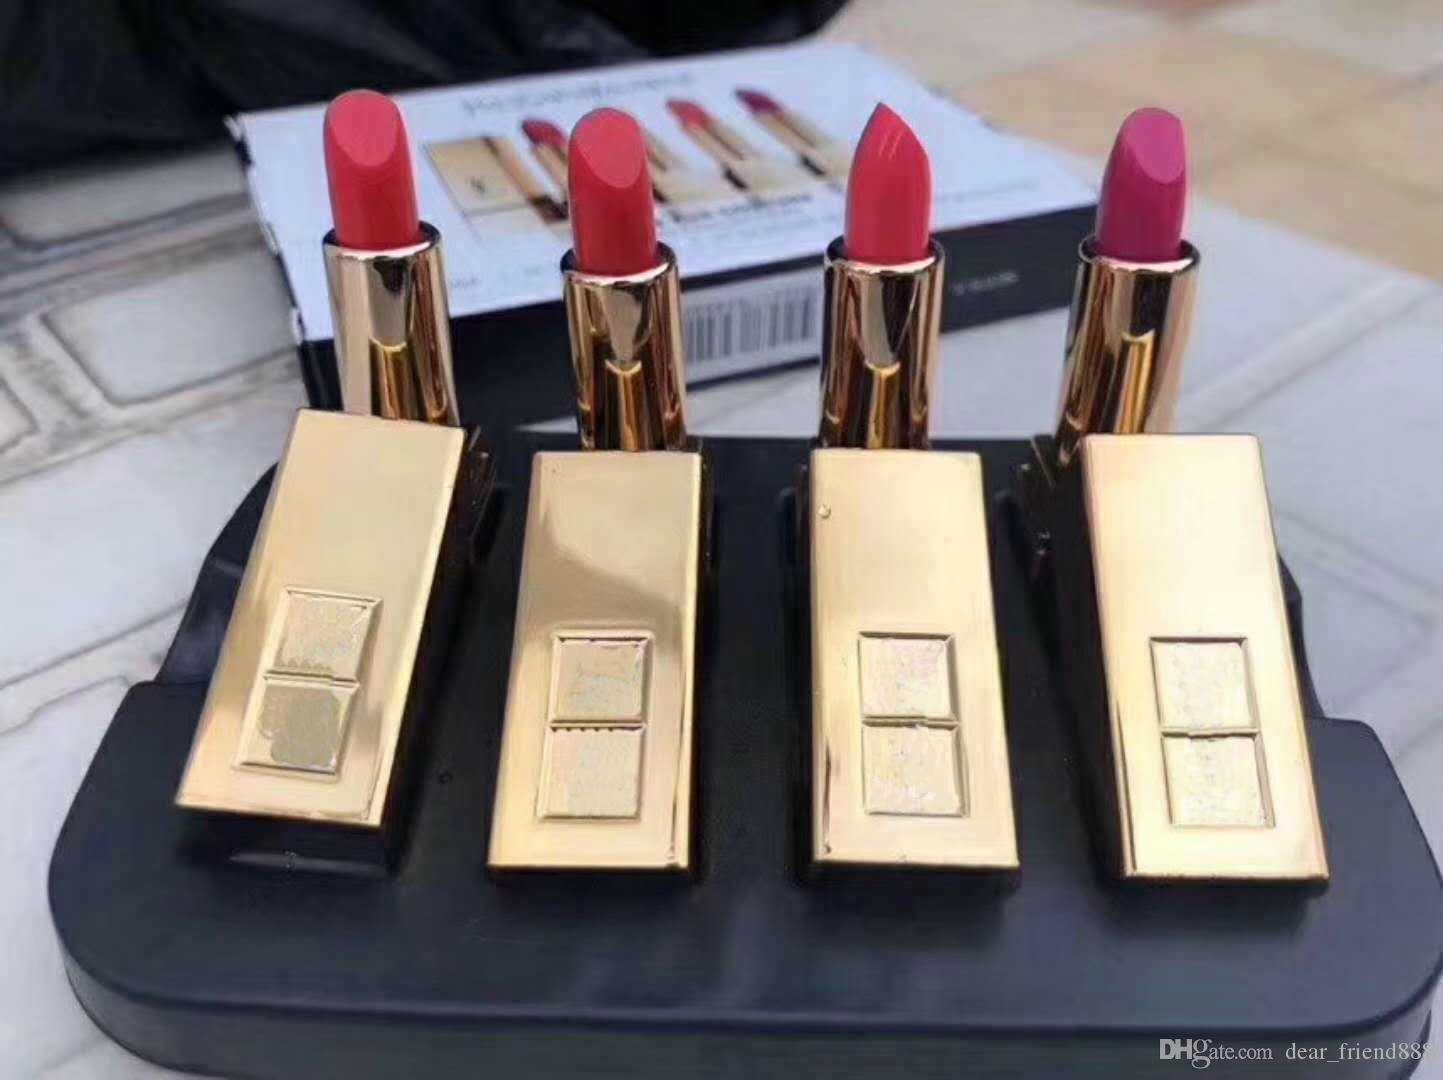 New Arrival Lipstick  Mini Size 0.85g Collection Lipstick Set 0.85g Makeup  Color N1 N13 N52 N19 Skin Care Products Black Lipstick From Dear friend888 2ba670234579